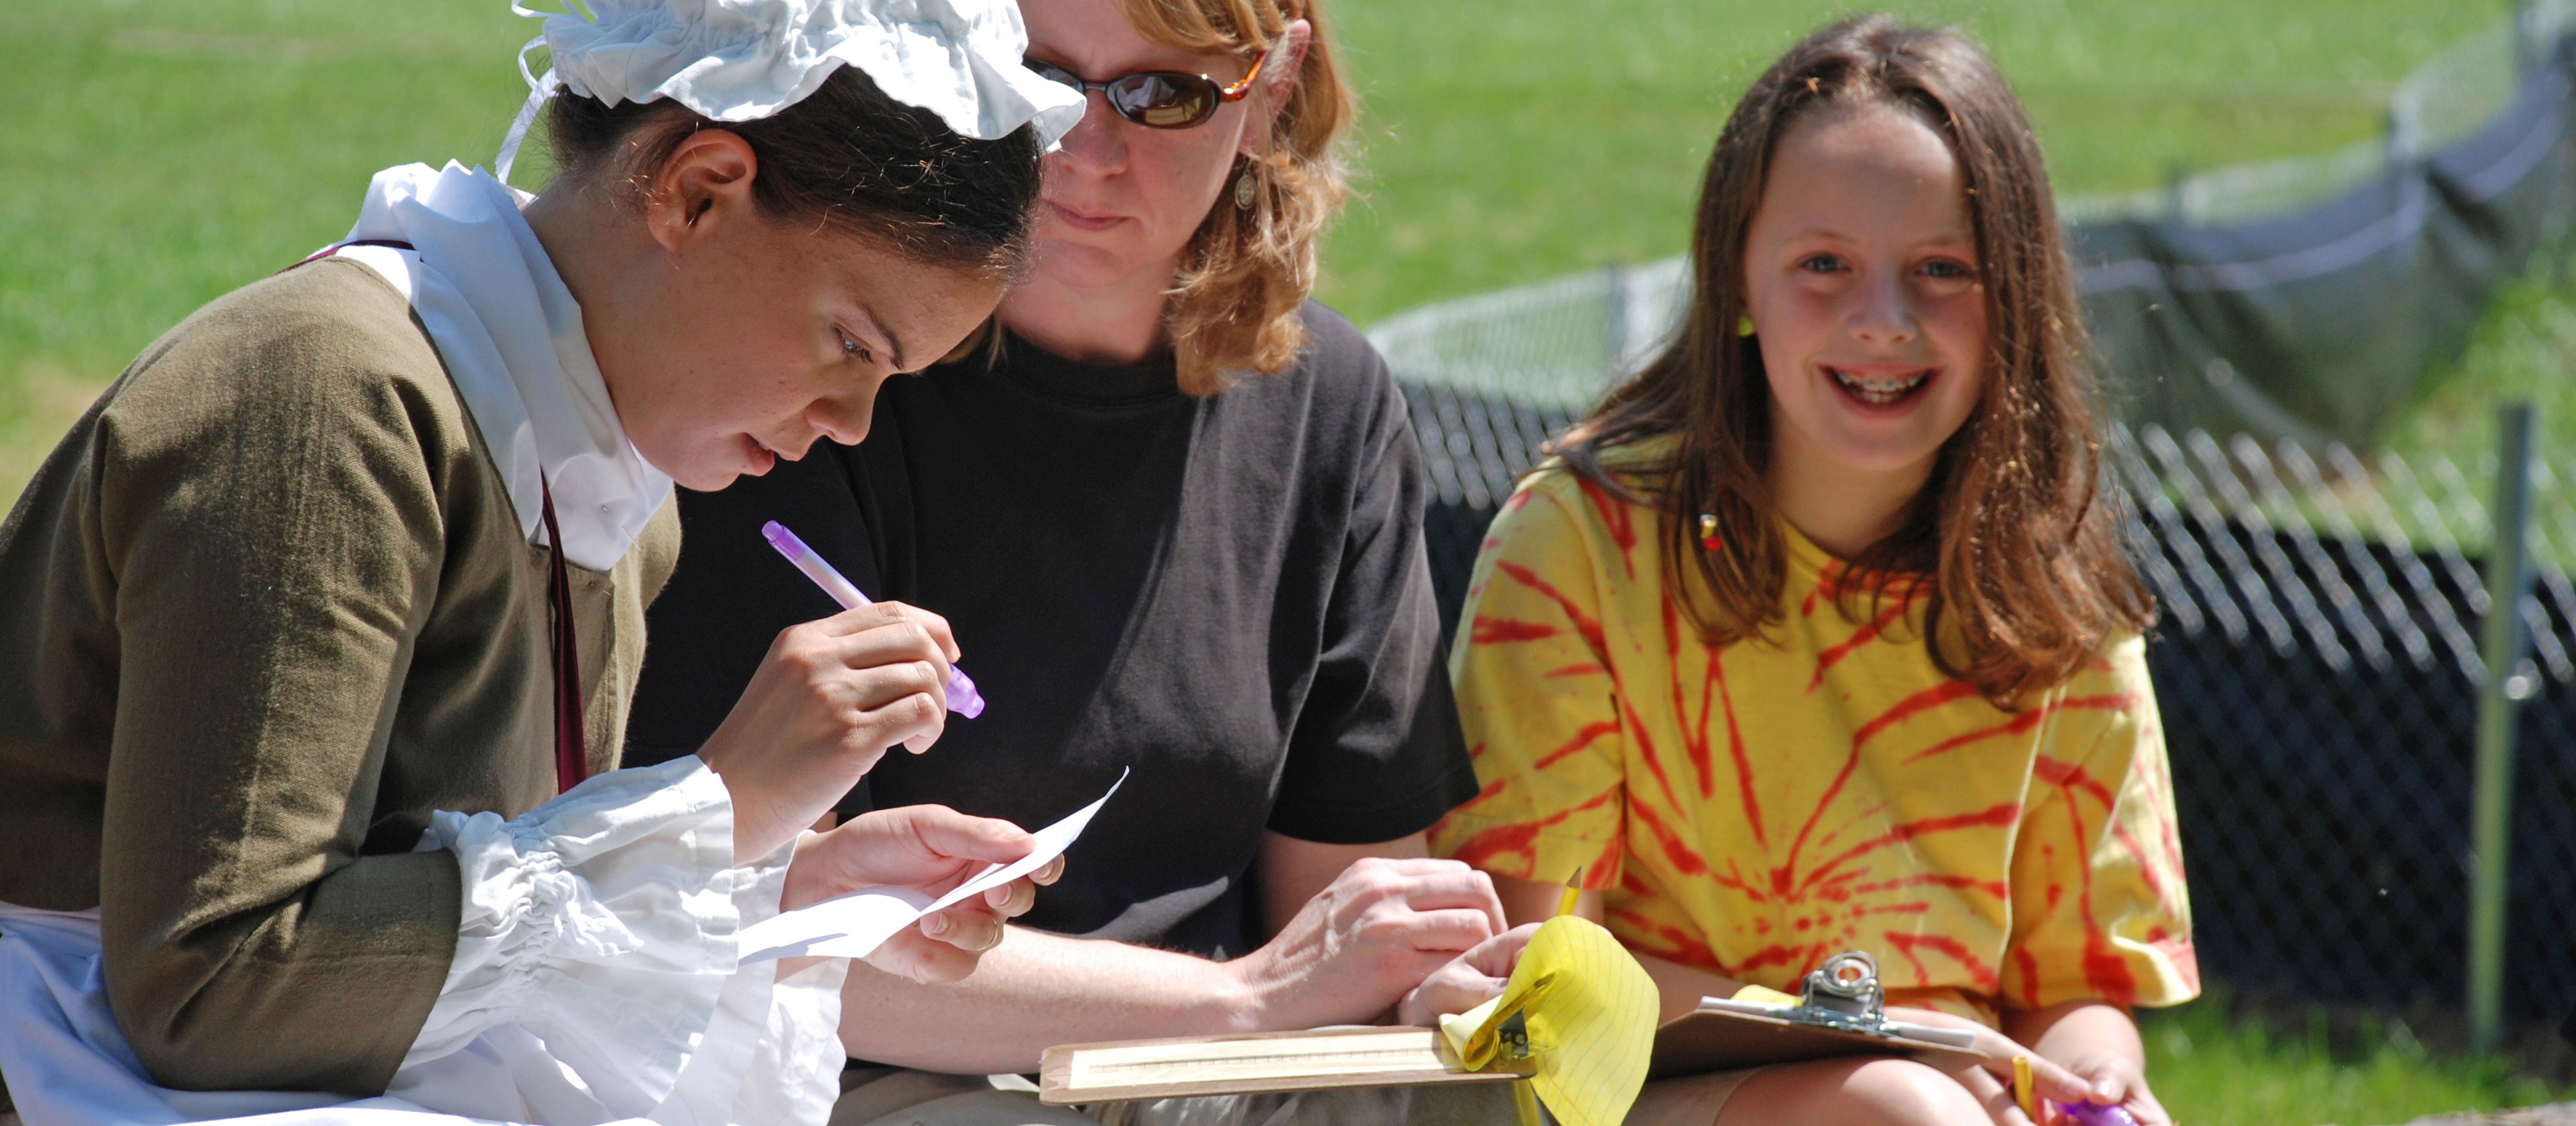 valley forge single parents Summer matters - summer programs  parent education:  valley forge educational services is an equal opportunity employer and educator and does not discriminate.